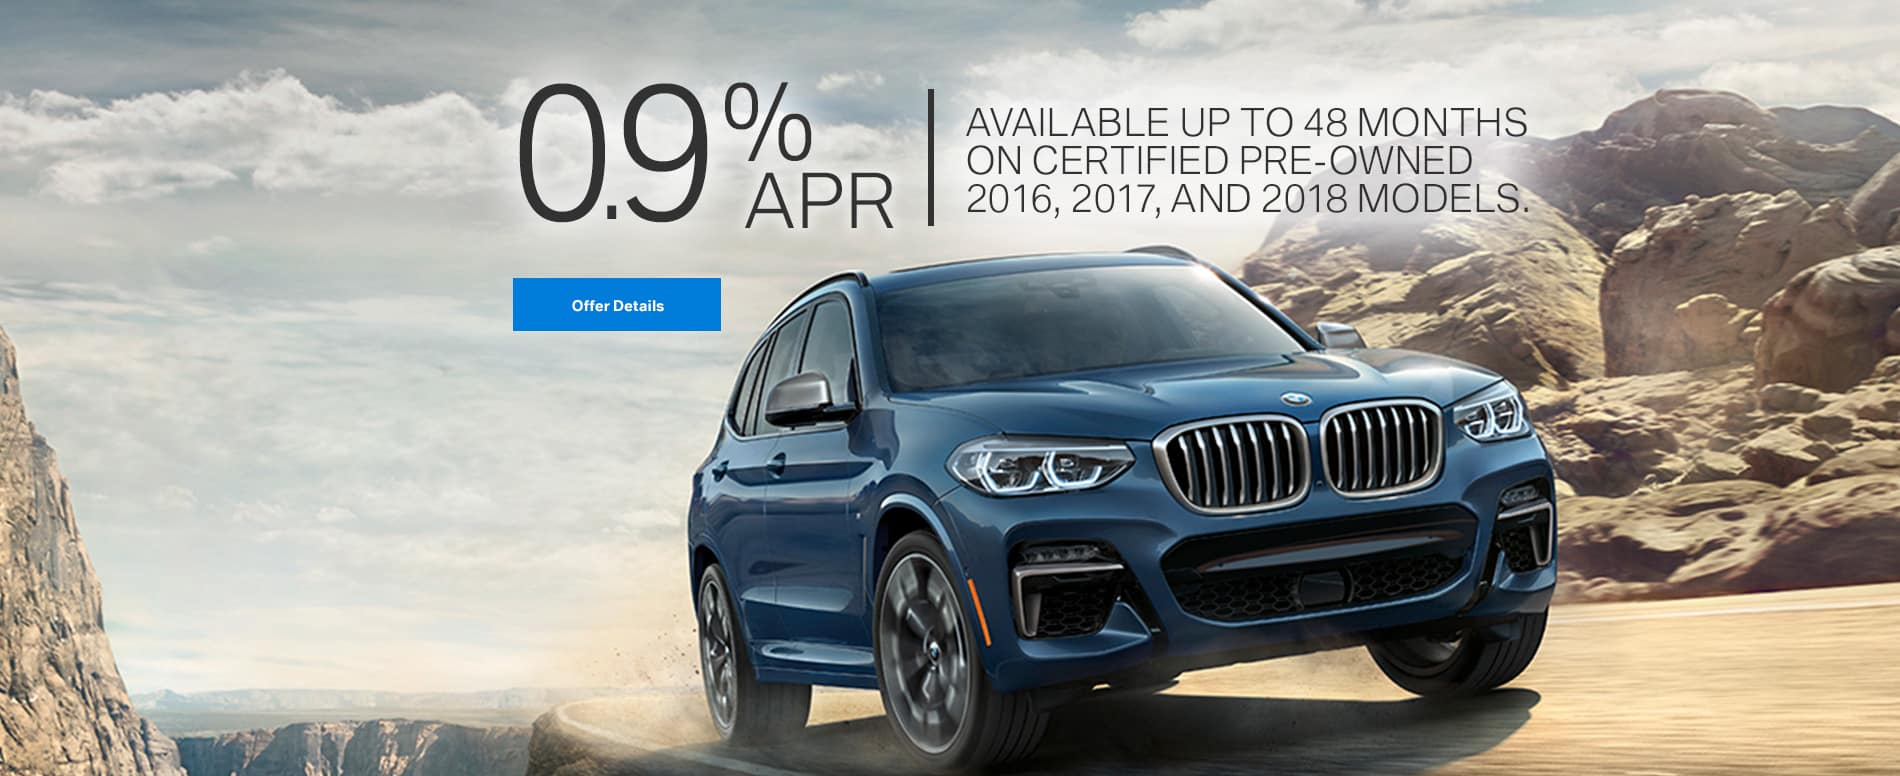 0.9% APR Available Up to 48 Months on Certified Pre-Owned 2016, 2017, & 2018 Models